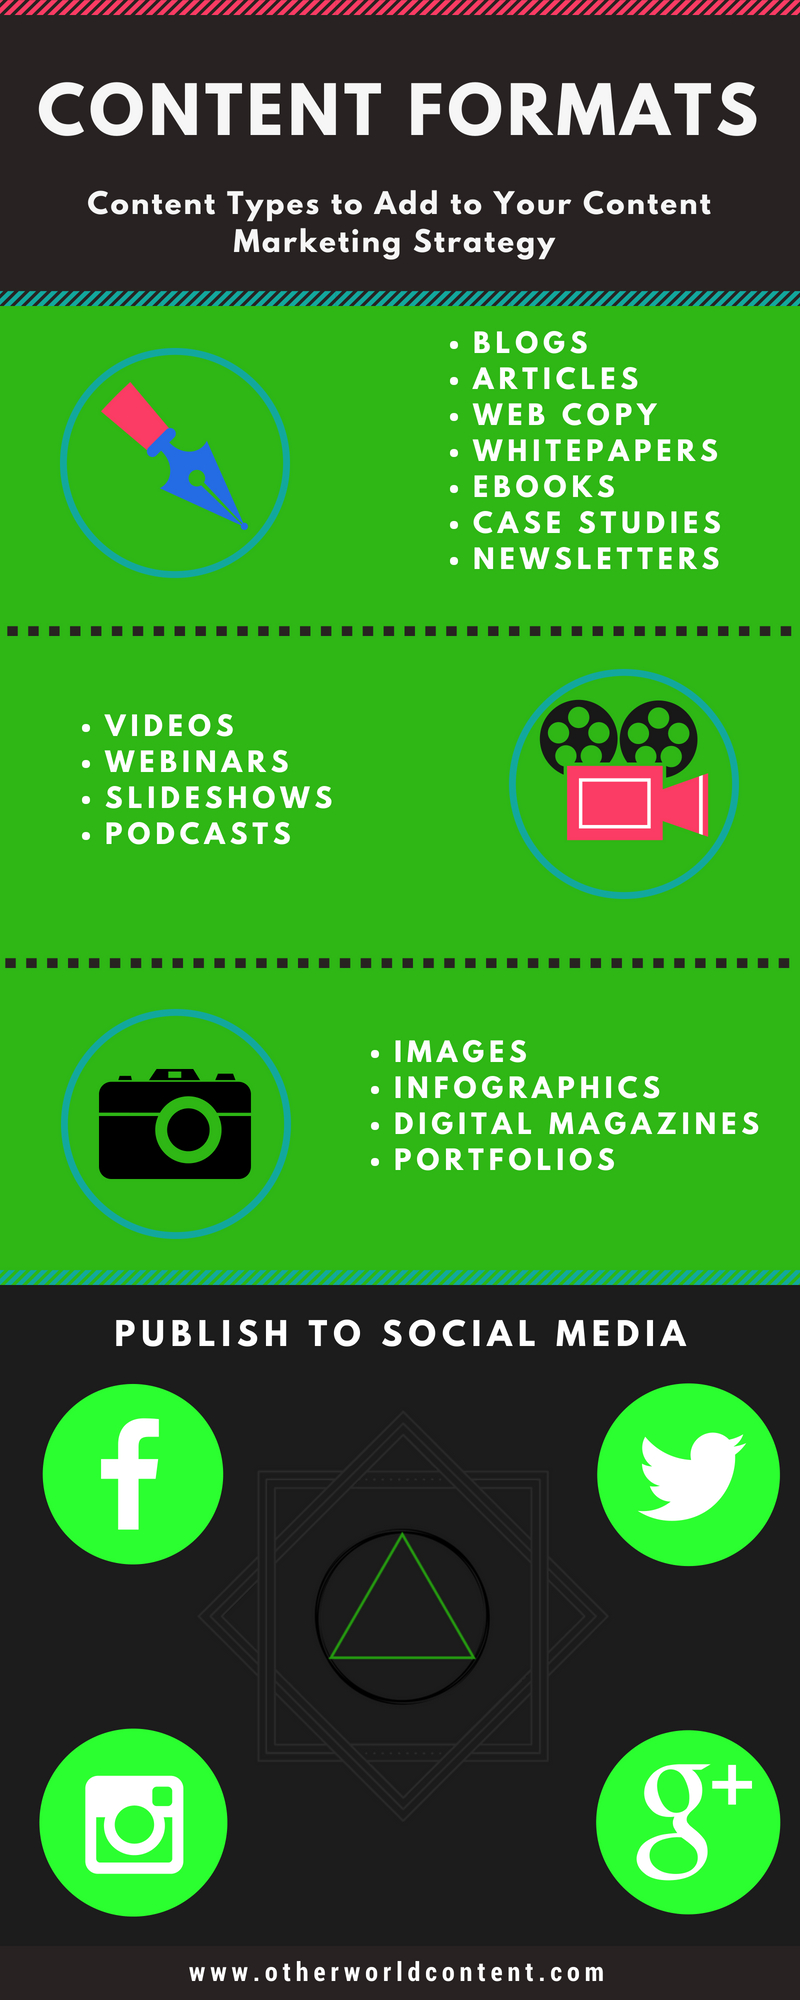 content format infographic content marketing strategy otherworld